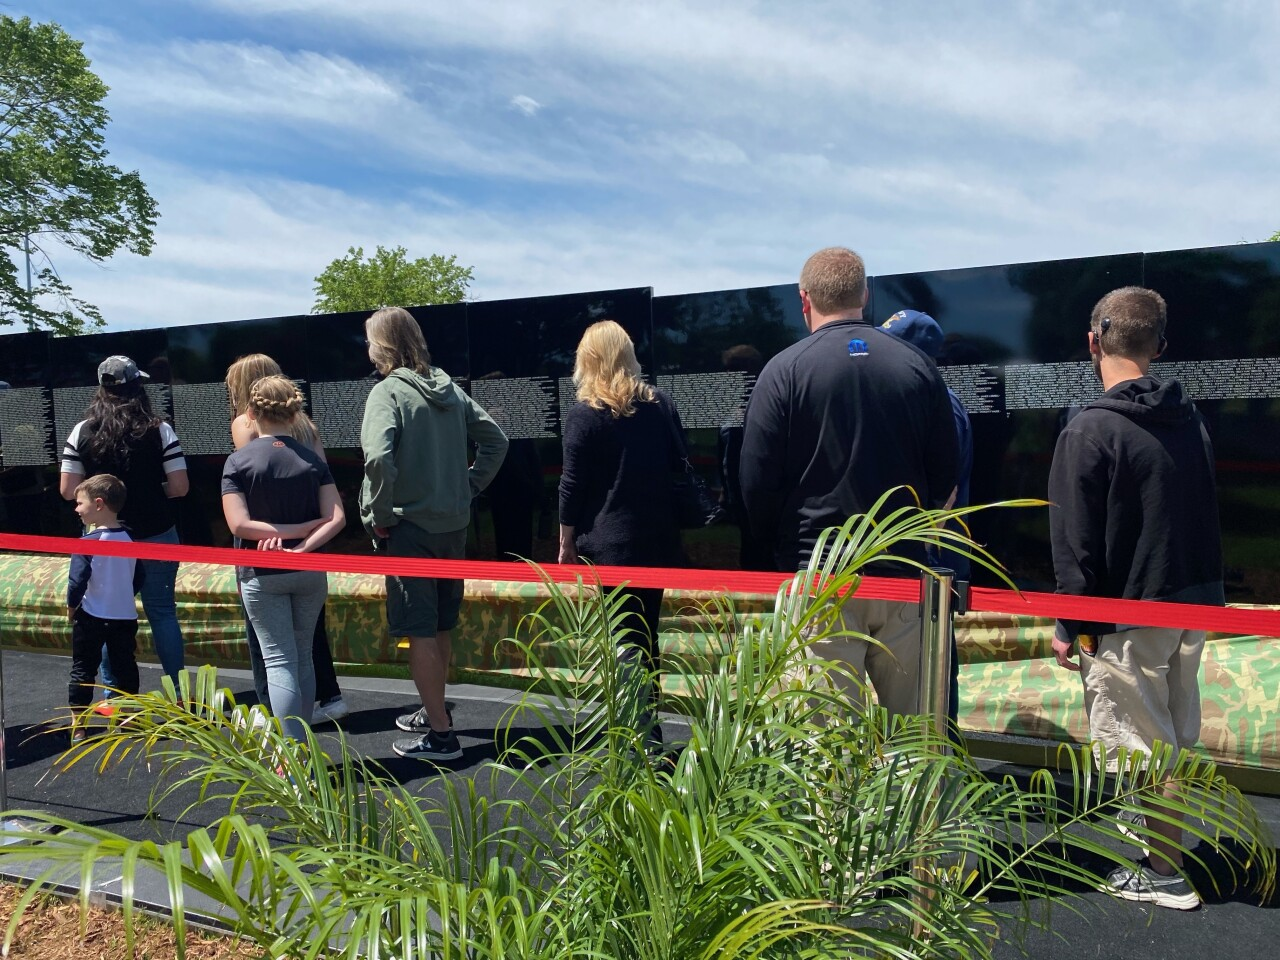 Visitors admire the moving wall exhibit in Waukesha prior to Memorial Day on Monday.